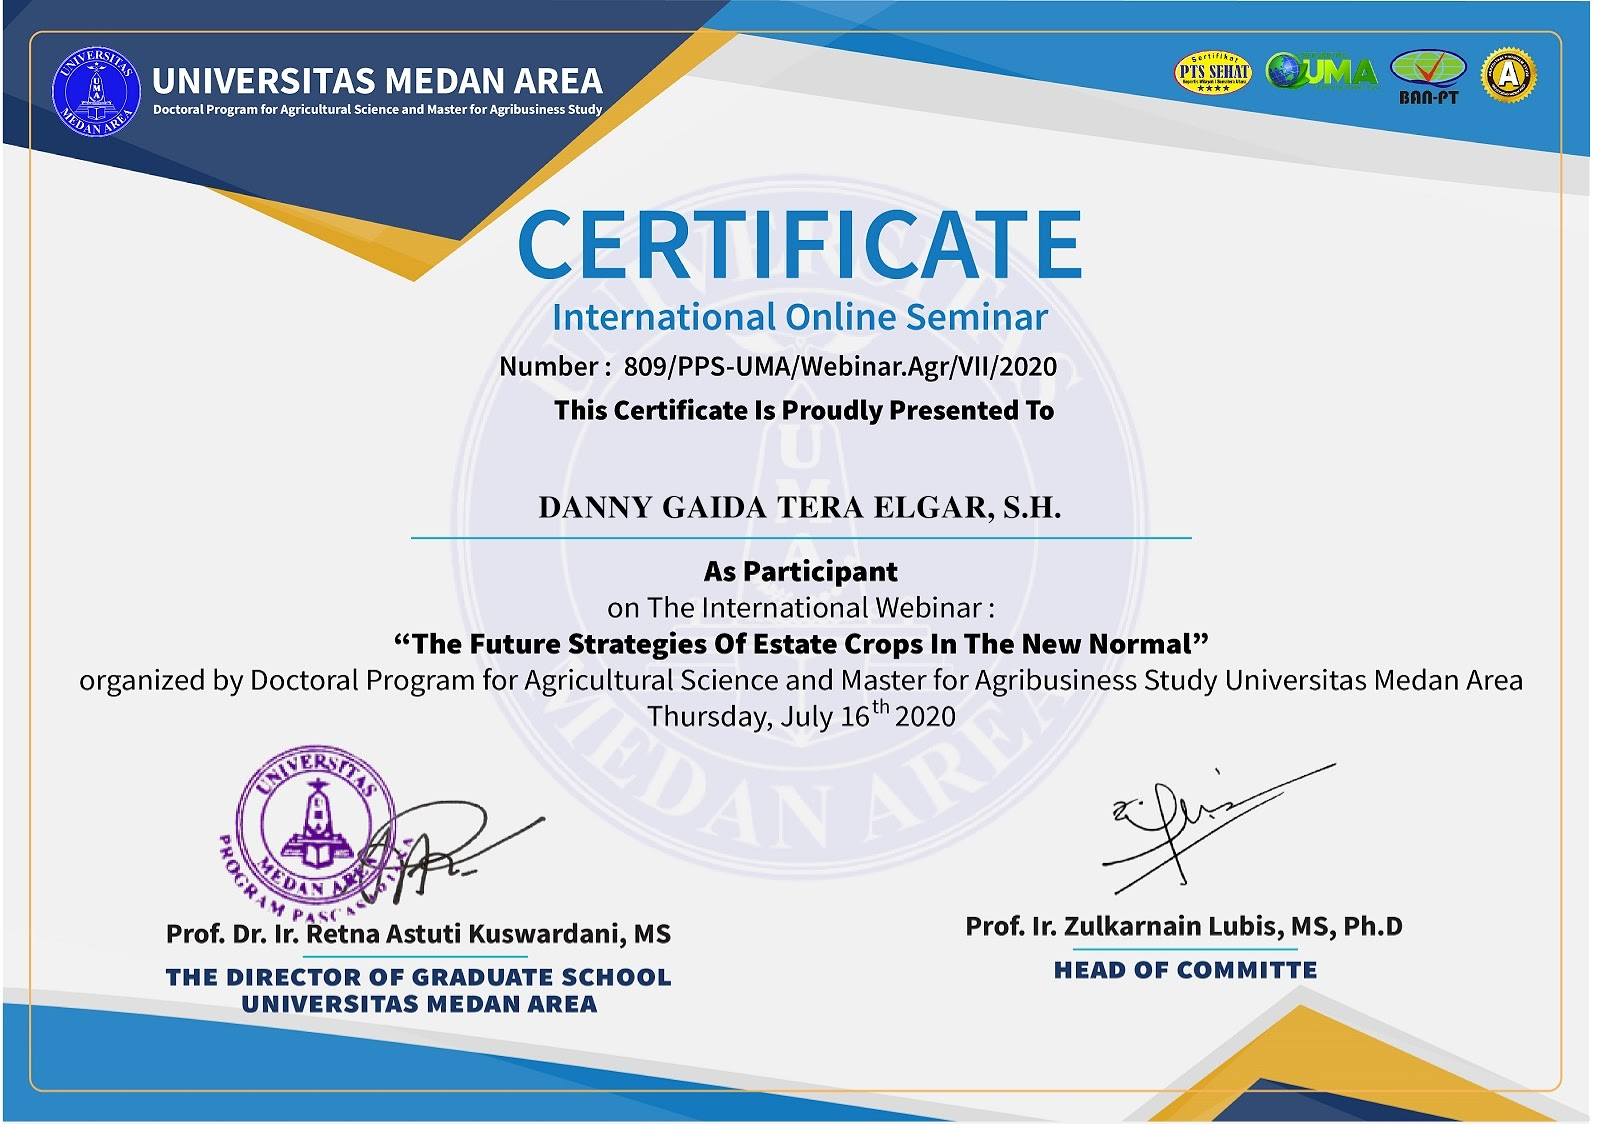 Certificate The Future Strategies Of Estate Crops In The New Normal | Magister Agribisnis dan Doktor Ilmu Pertanian Program Pascasarjana Universitas Medan Area (UMA)